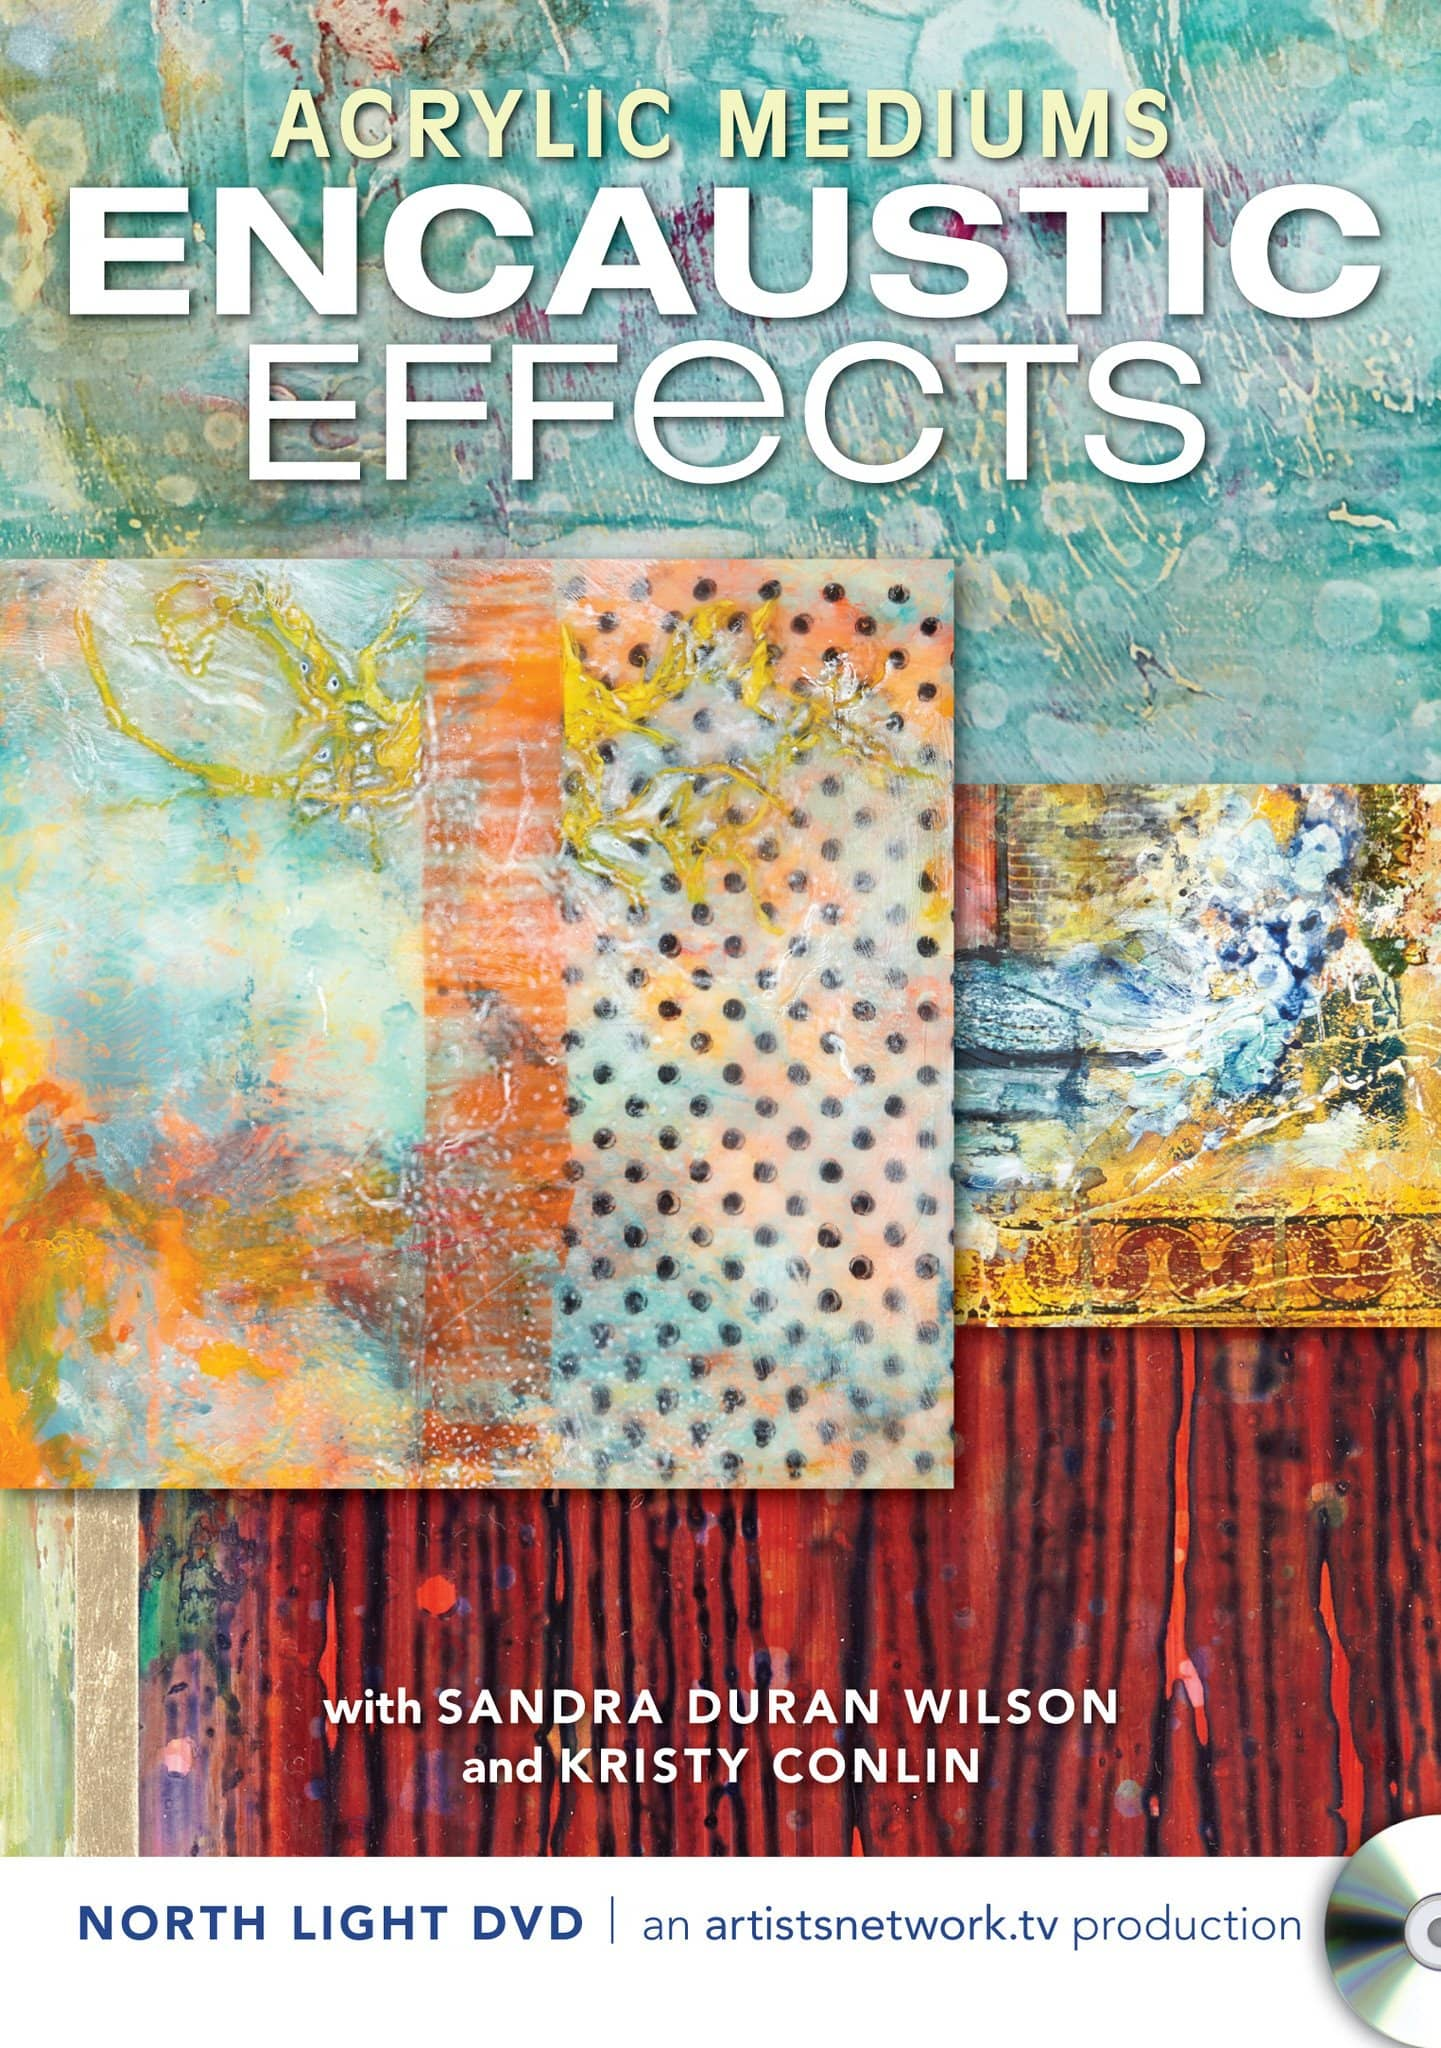 Acrylic Mediums, Encaustic Effects with Sandra Duran Wilson & Kristy Conlin